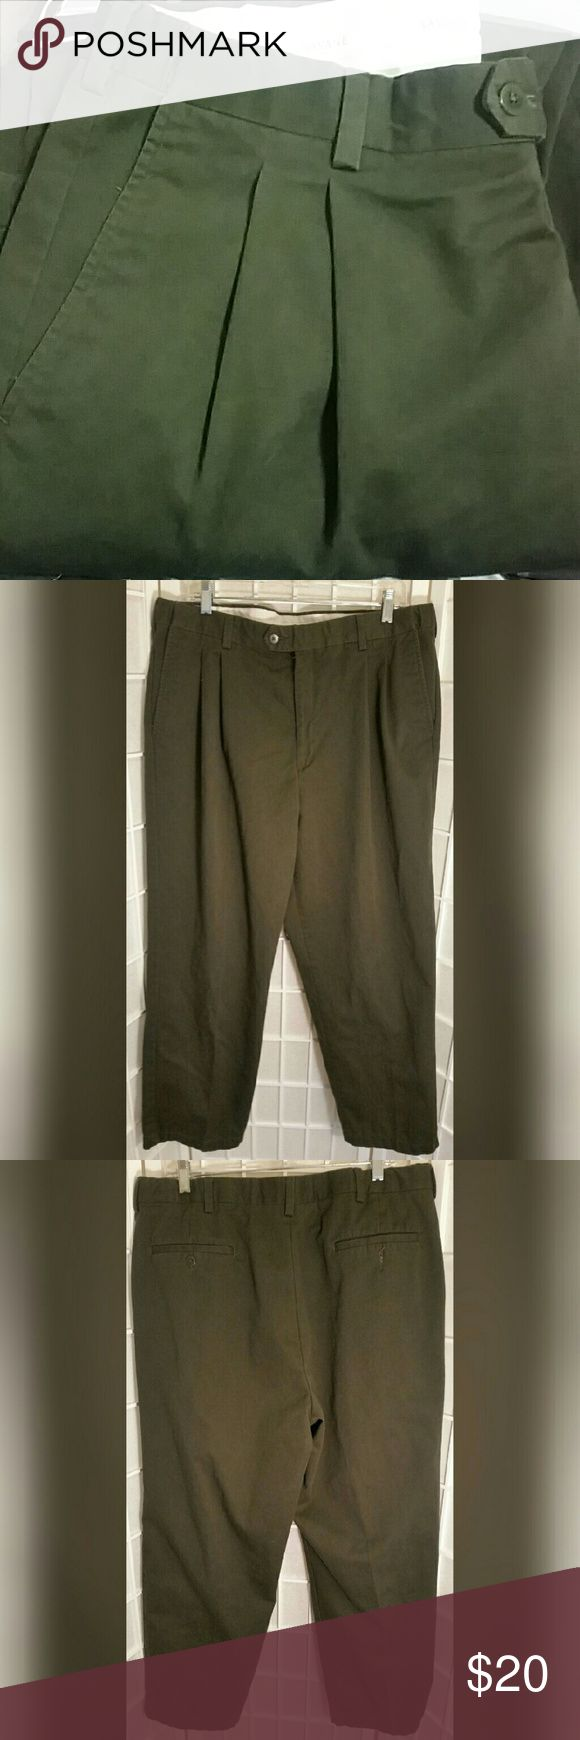 Men's olive green Savane dress pant 38x30 Men's olive green Savane dress pant  Has waist extender inside waist band  38x30  Great condition no flaws   Material content 100% cotton  ❣pictures are part of the description ❣colors may vary from monitor to monitor ❣No trades or off site transactions/communications ❣Open to reasonable offers ❣same day shipping Mon-Sat if purchased before 2:30pm central time  ❣Please ask questions all questions BEFORE buying. ❣PLEASE do not rate me on how the item…